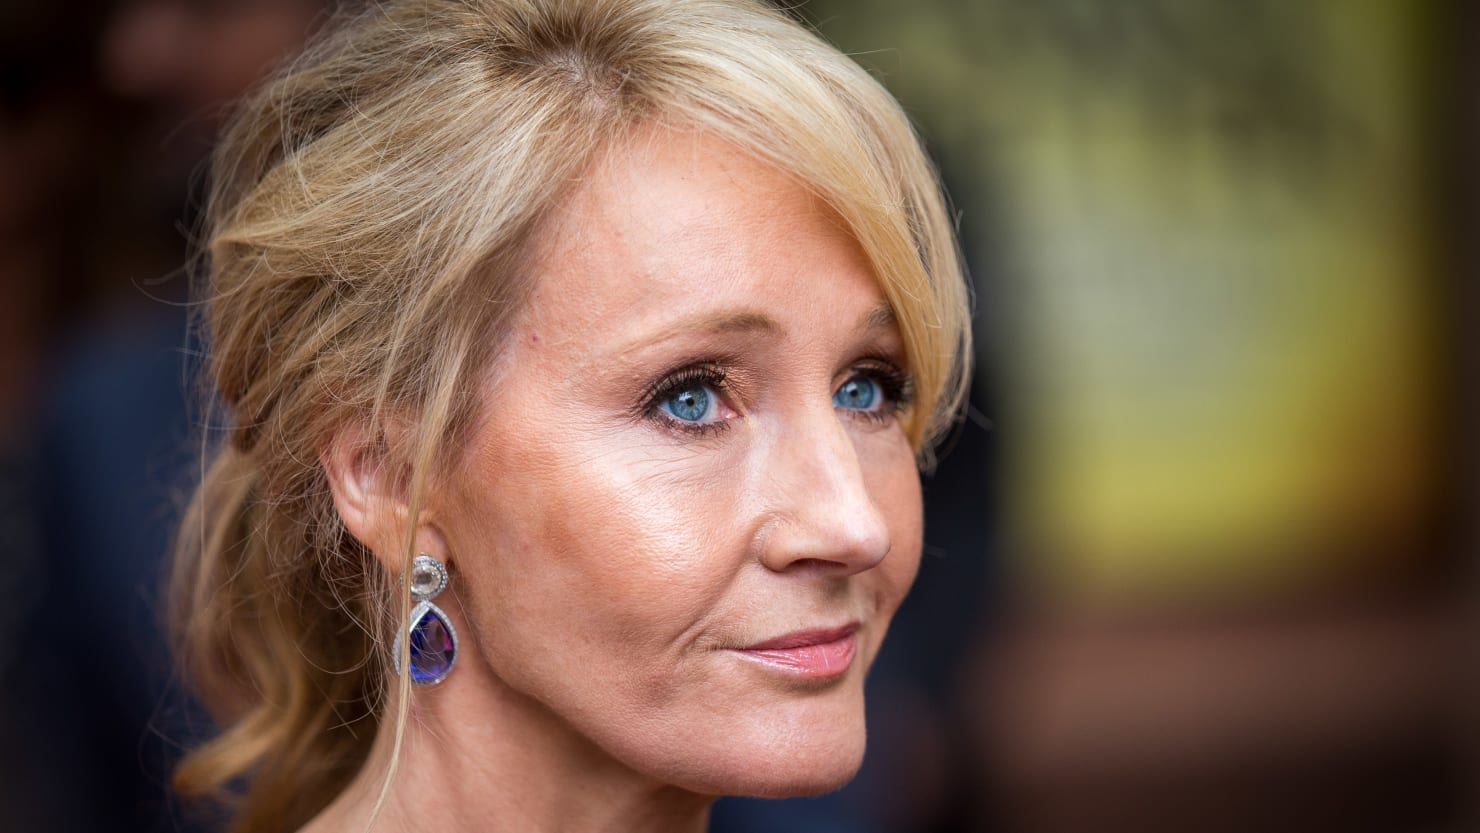 JK Rowling Doubles Down On Her Transphobia - cover